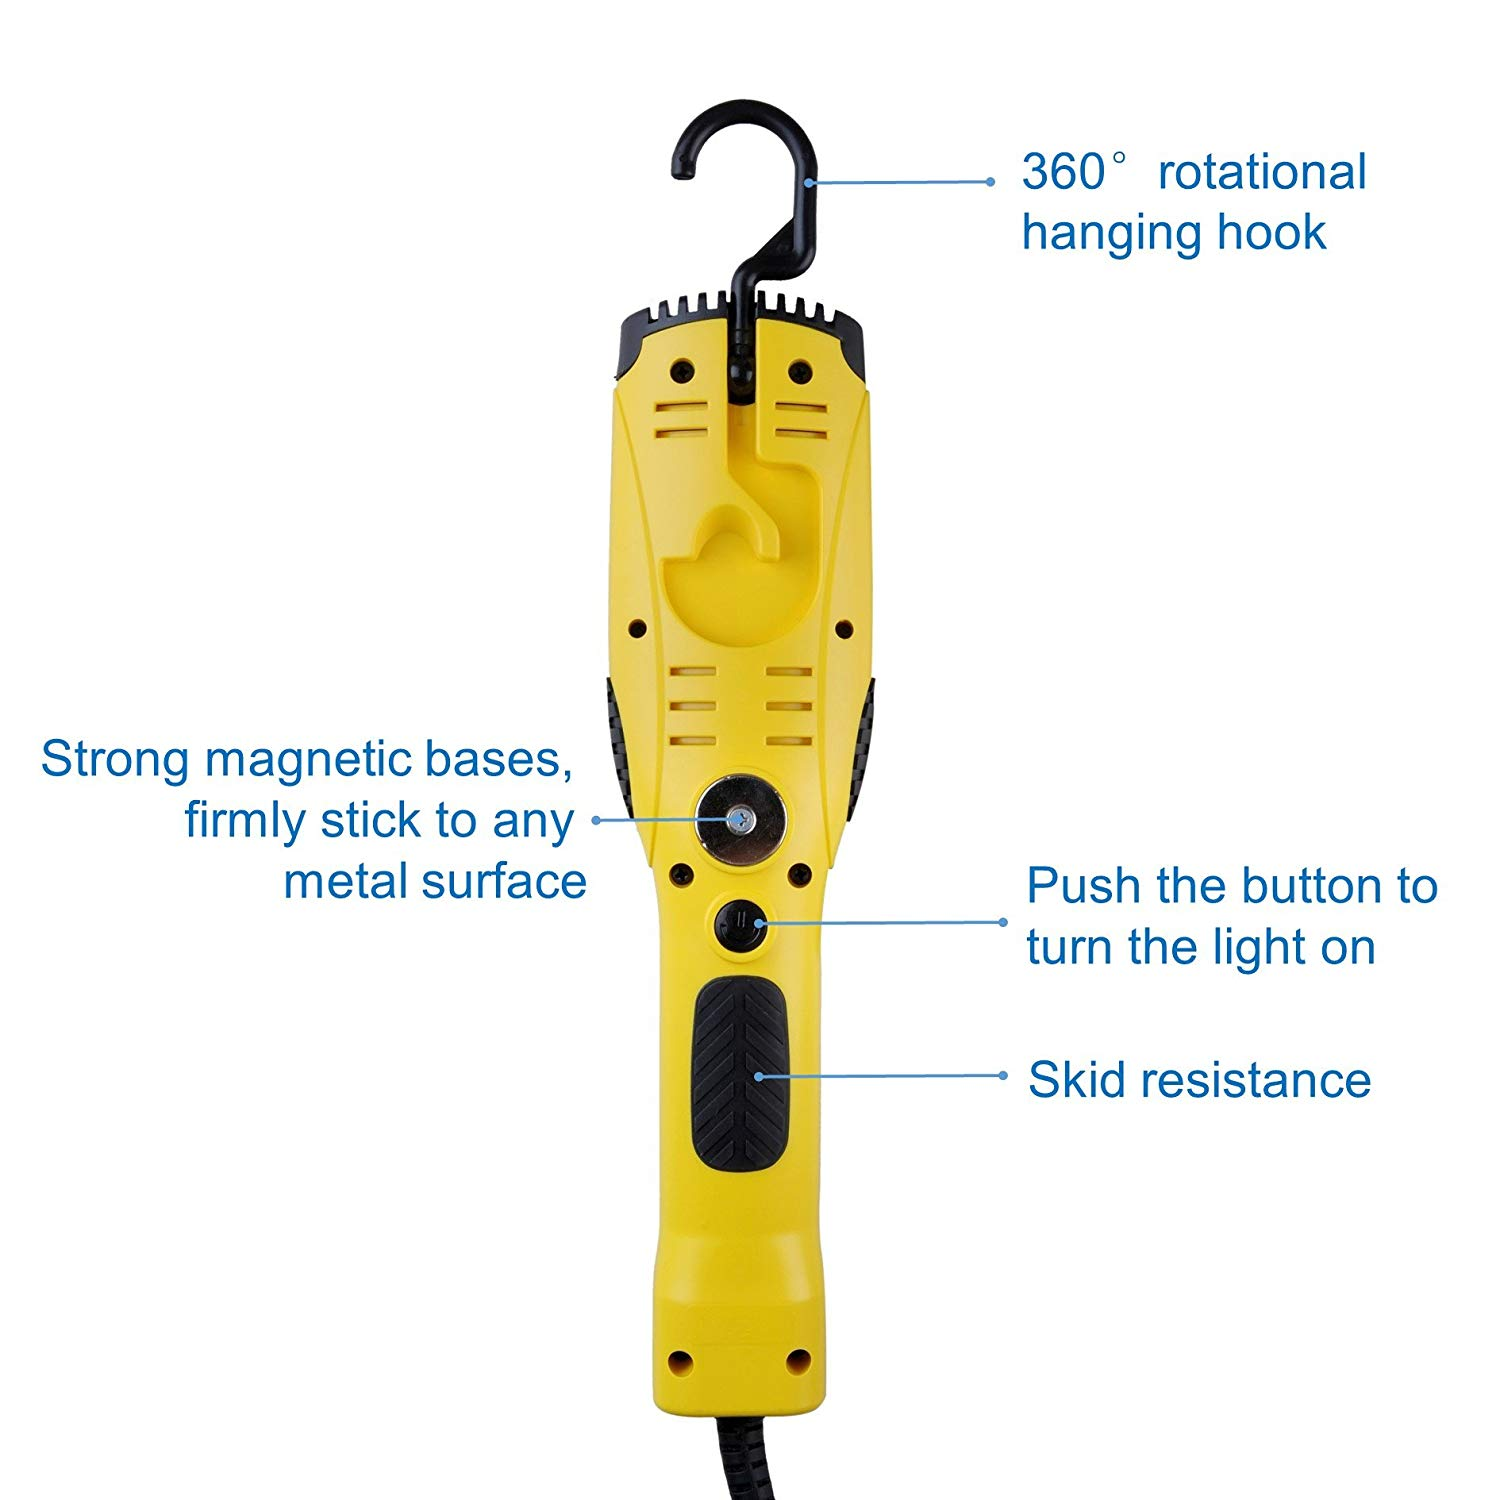 Aceland Portable Corded LED Work Light with Outlet in Handle